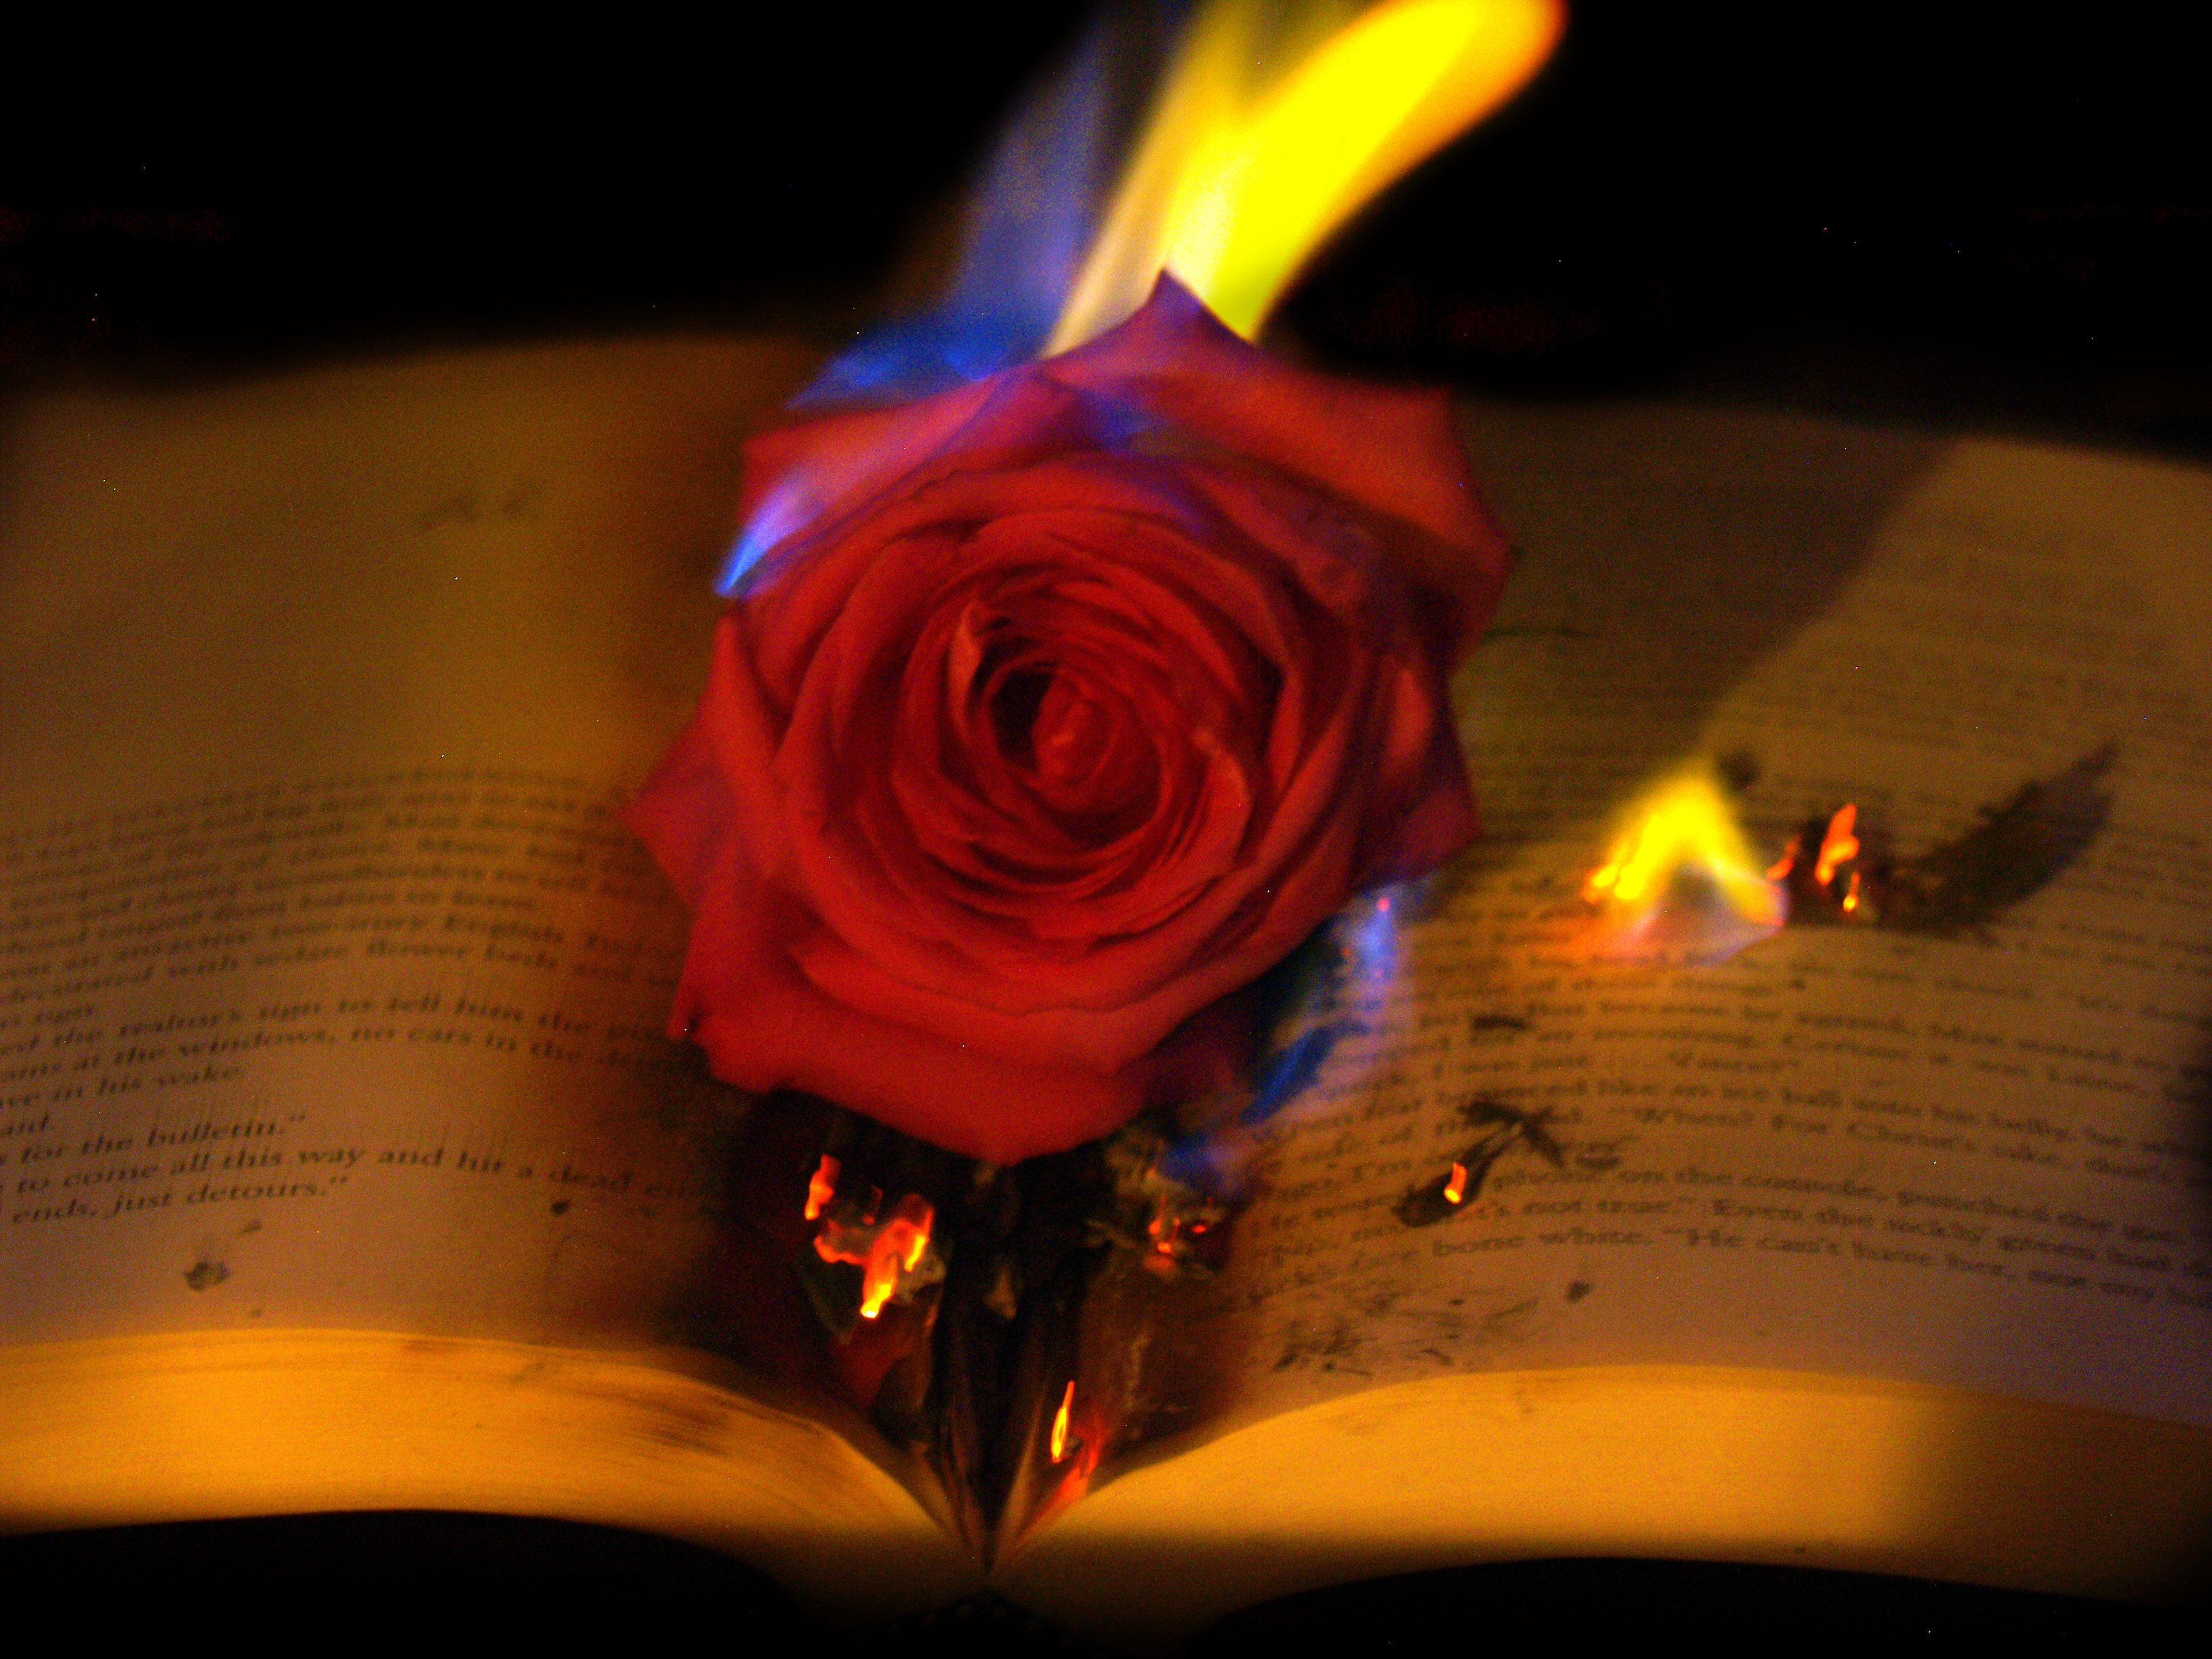 Floral Book Fire Photography Fire Photography Photoshop Photography Burning Flowers